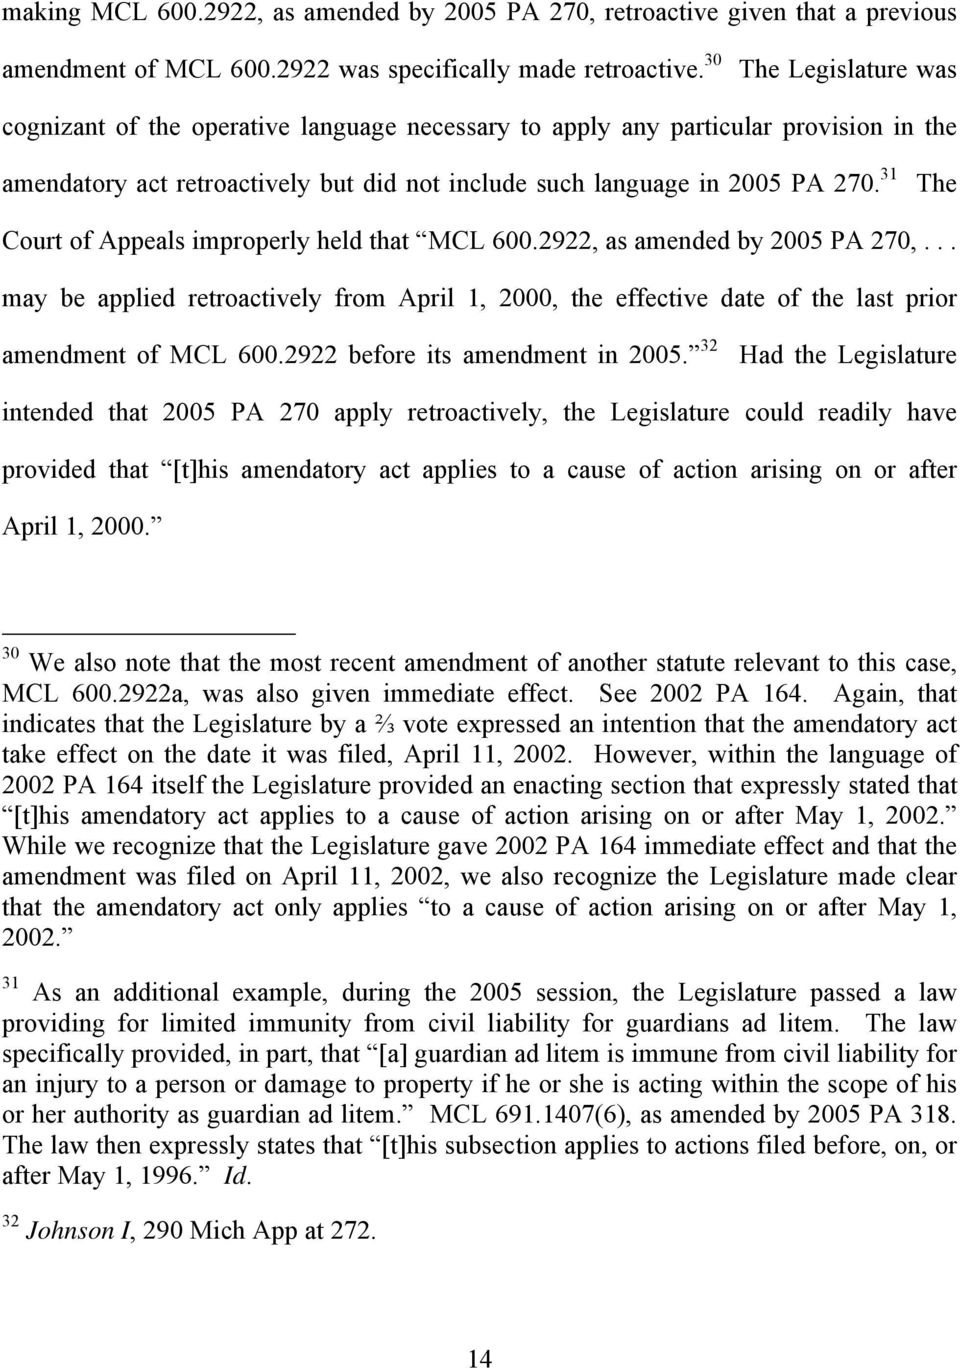 31 The Court of Appeals improperly held that MCL 600.2922, as amended by 2005 PA 270,... may be applied retroactively from April 1, 2000, the effective date of the last prior amendment of MCL 600.